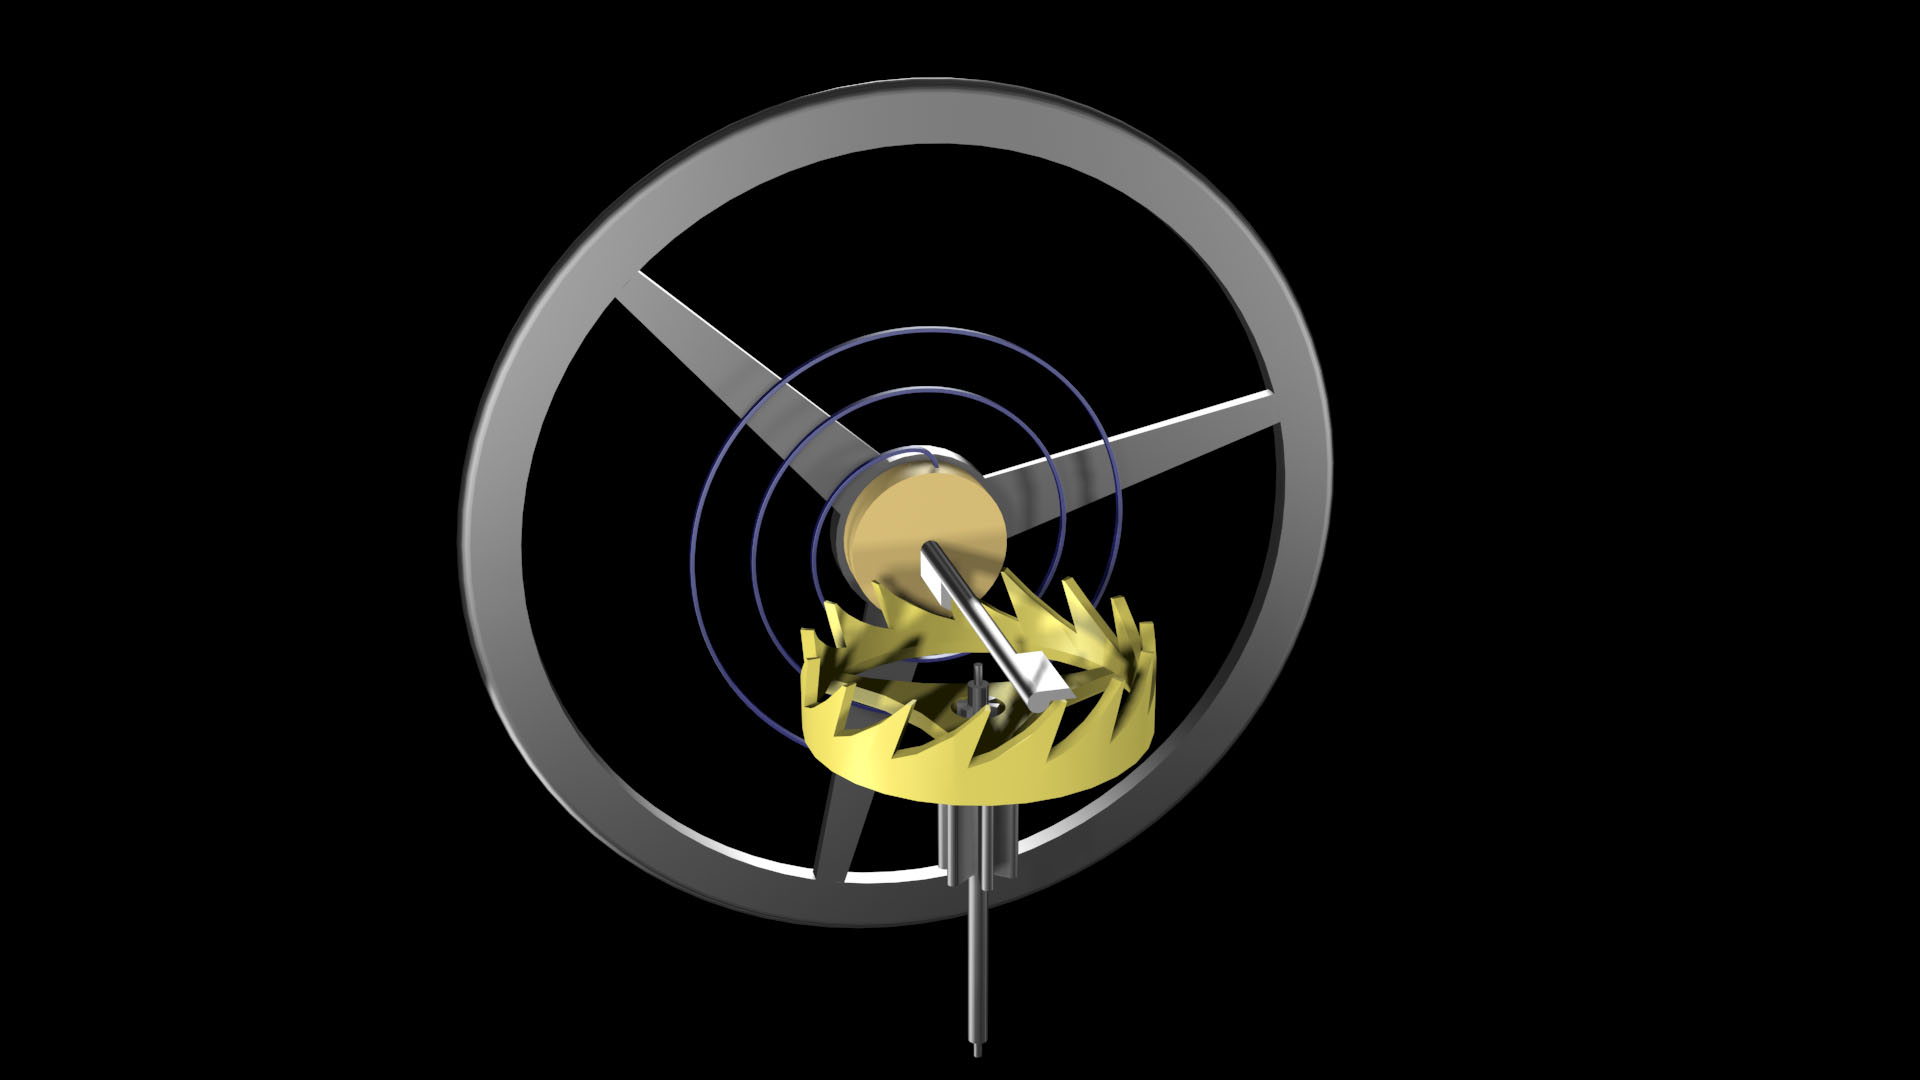 1992:  The first animation of a watch escapement